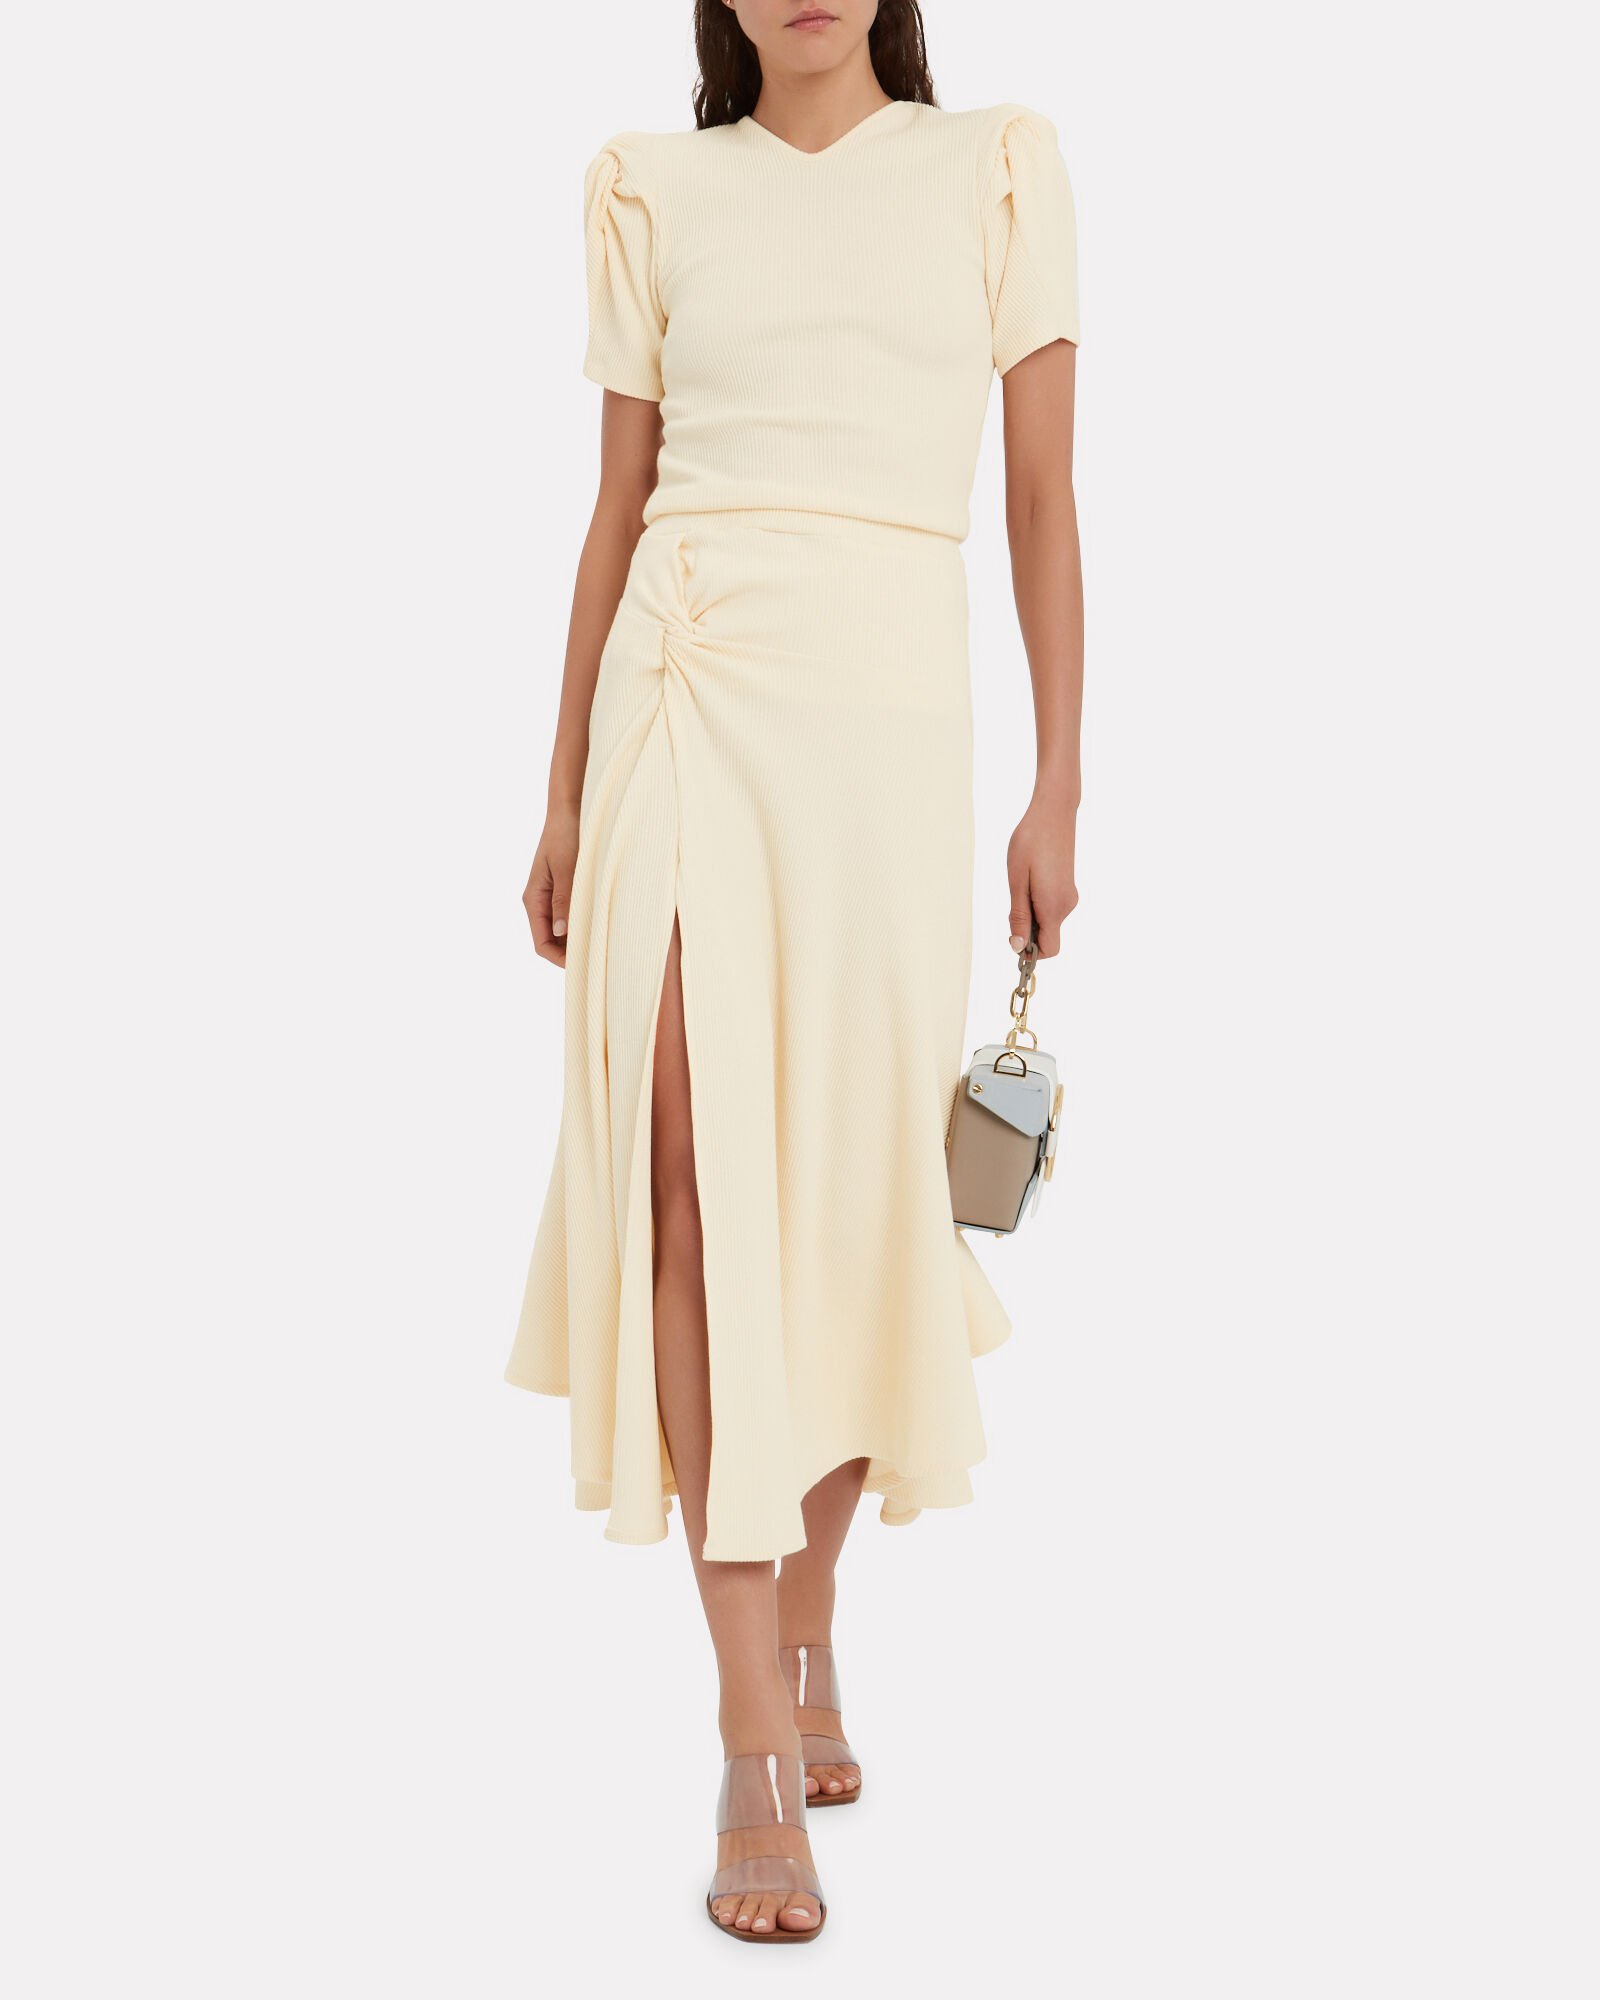 Honey Ain't Home Twisted Midi Skirt, BUTTER, hi-res